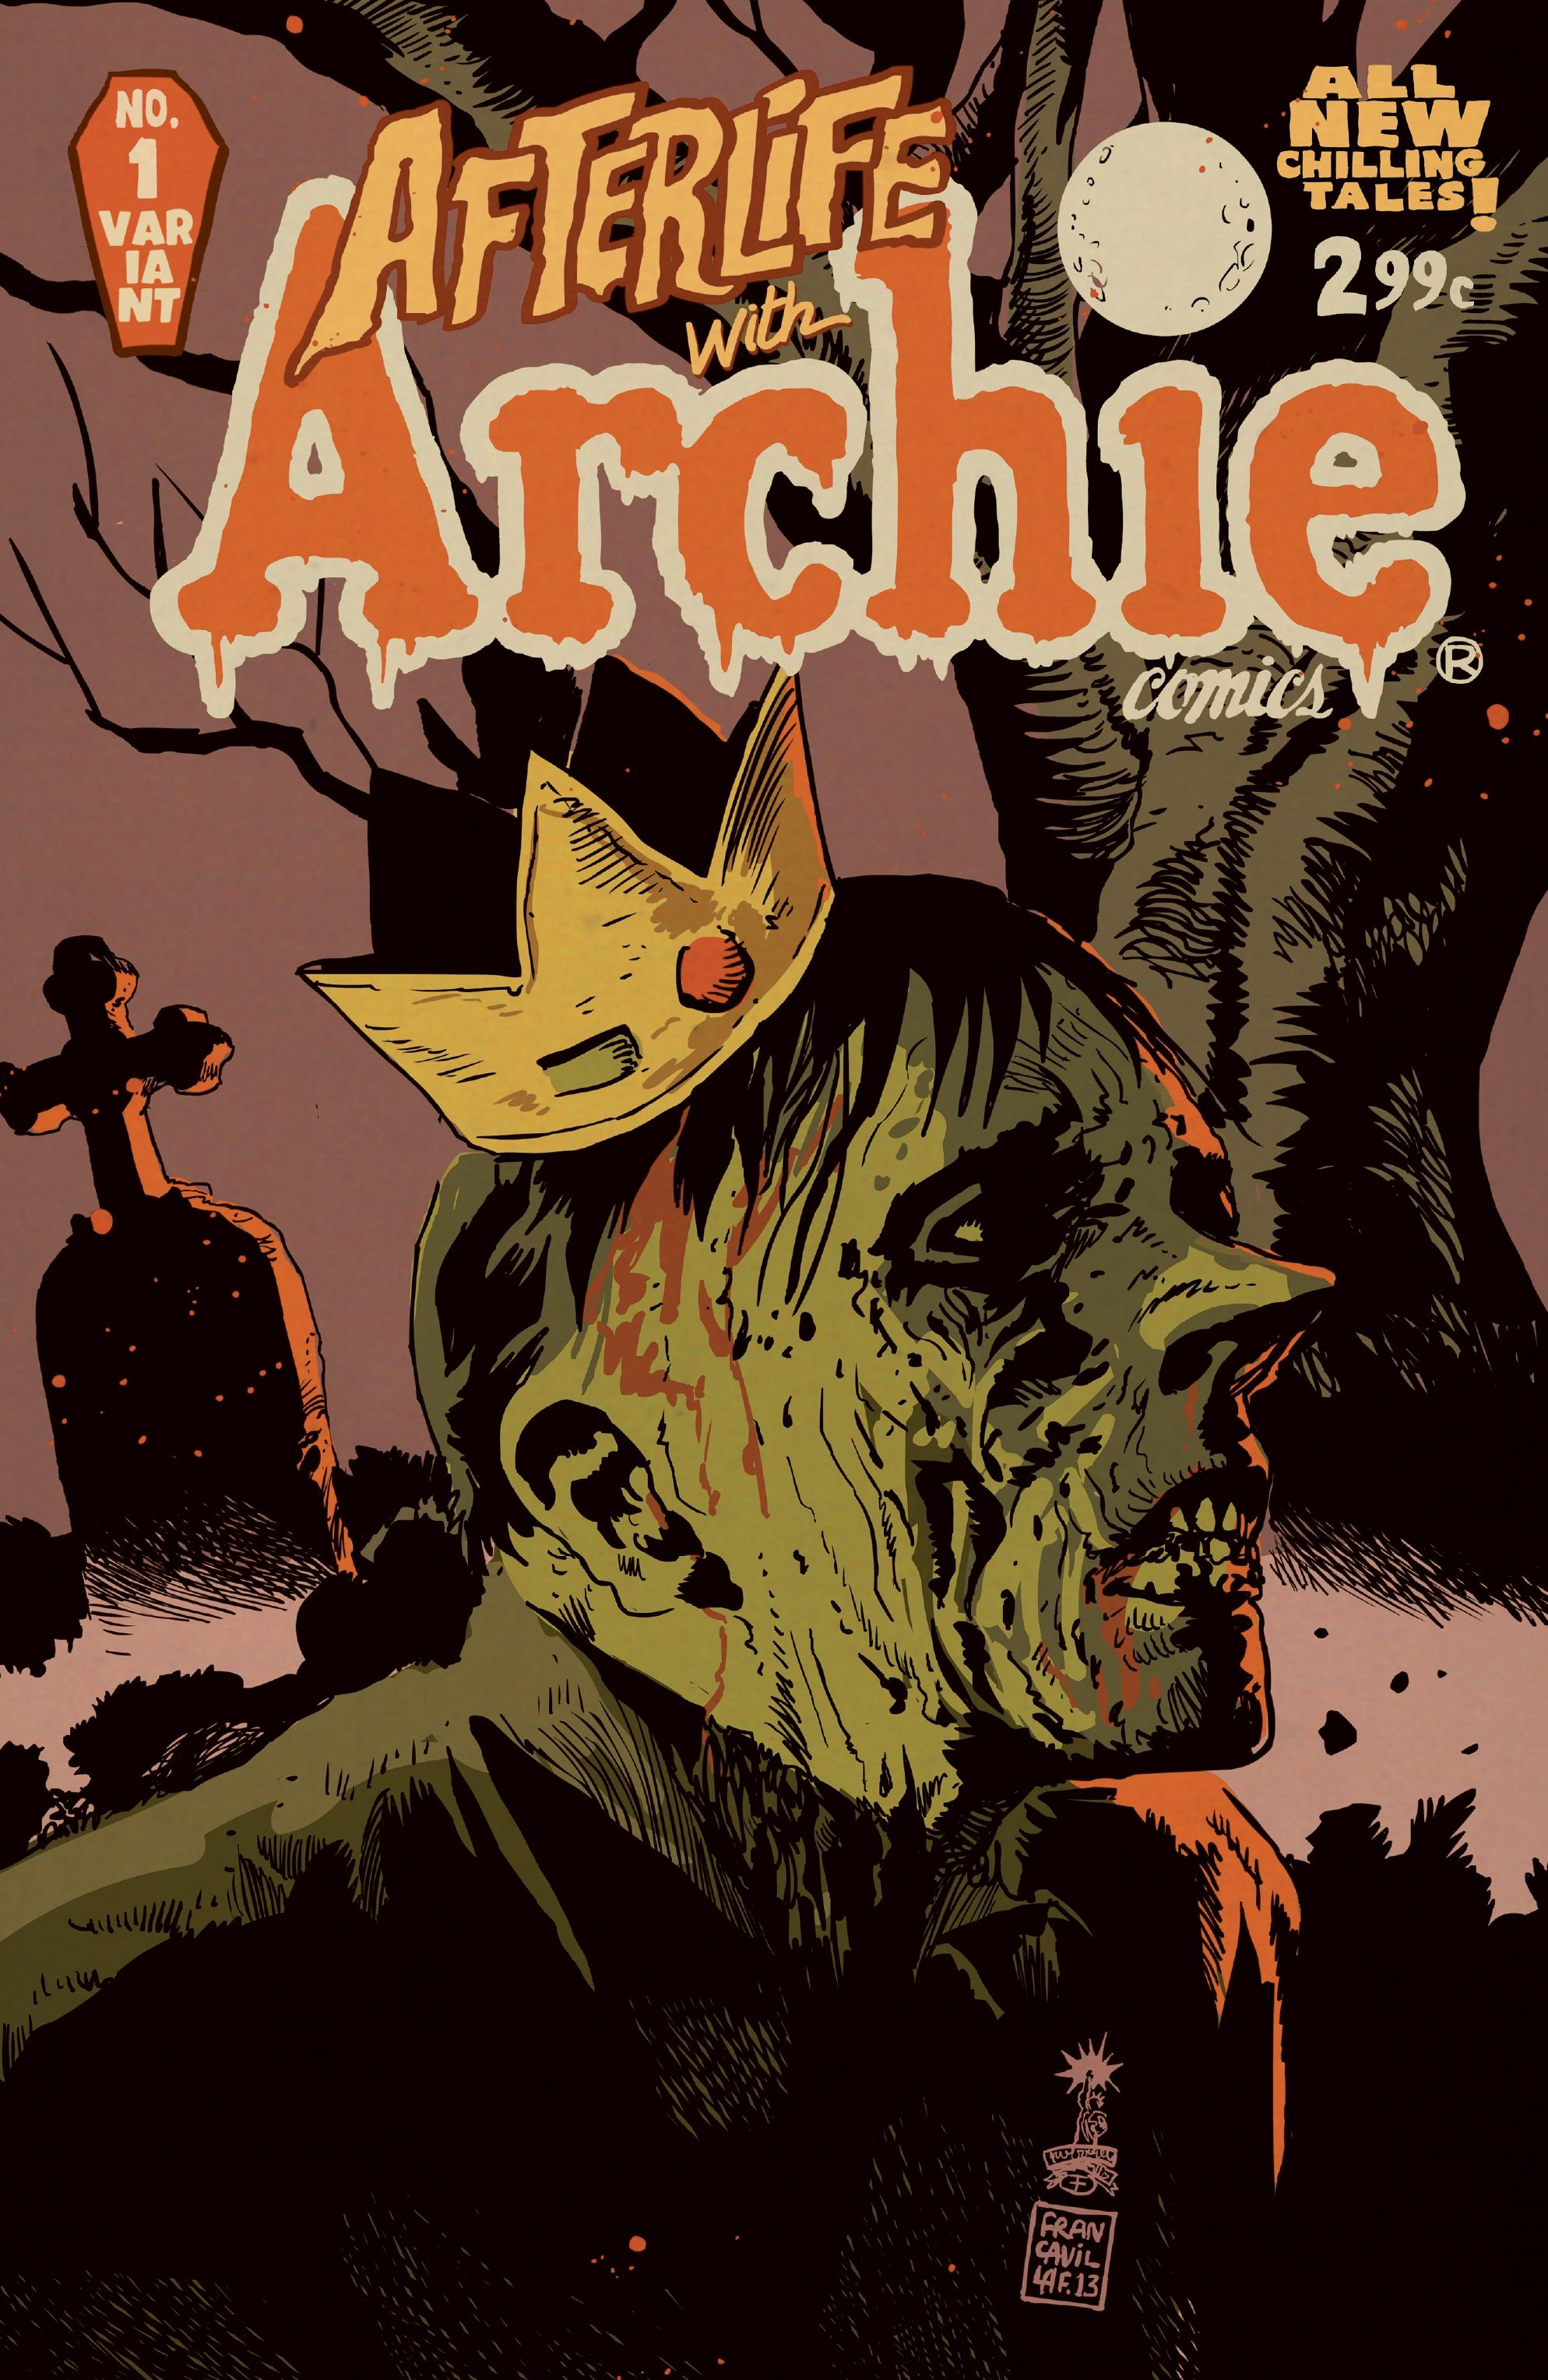 Francesco Francavilla Cover Reveal 'Afterlife With Archie' #1!